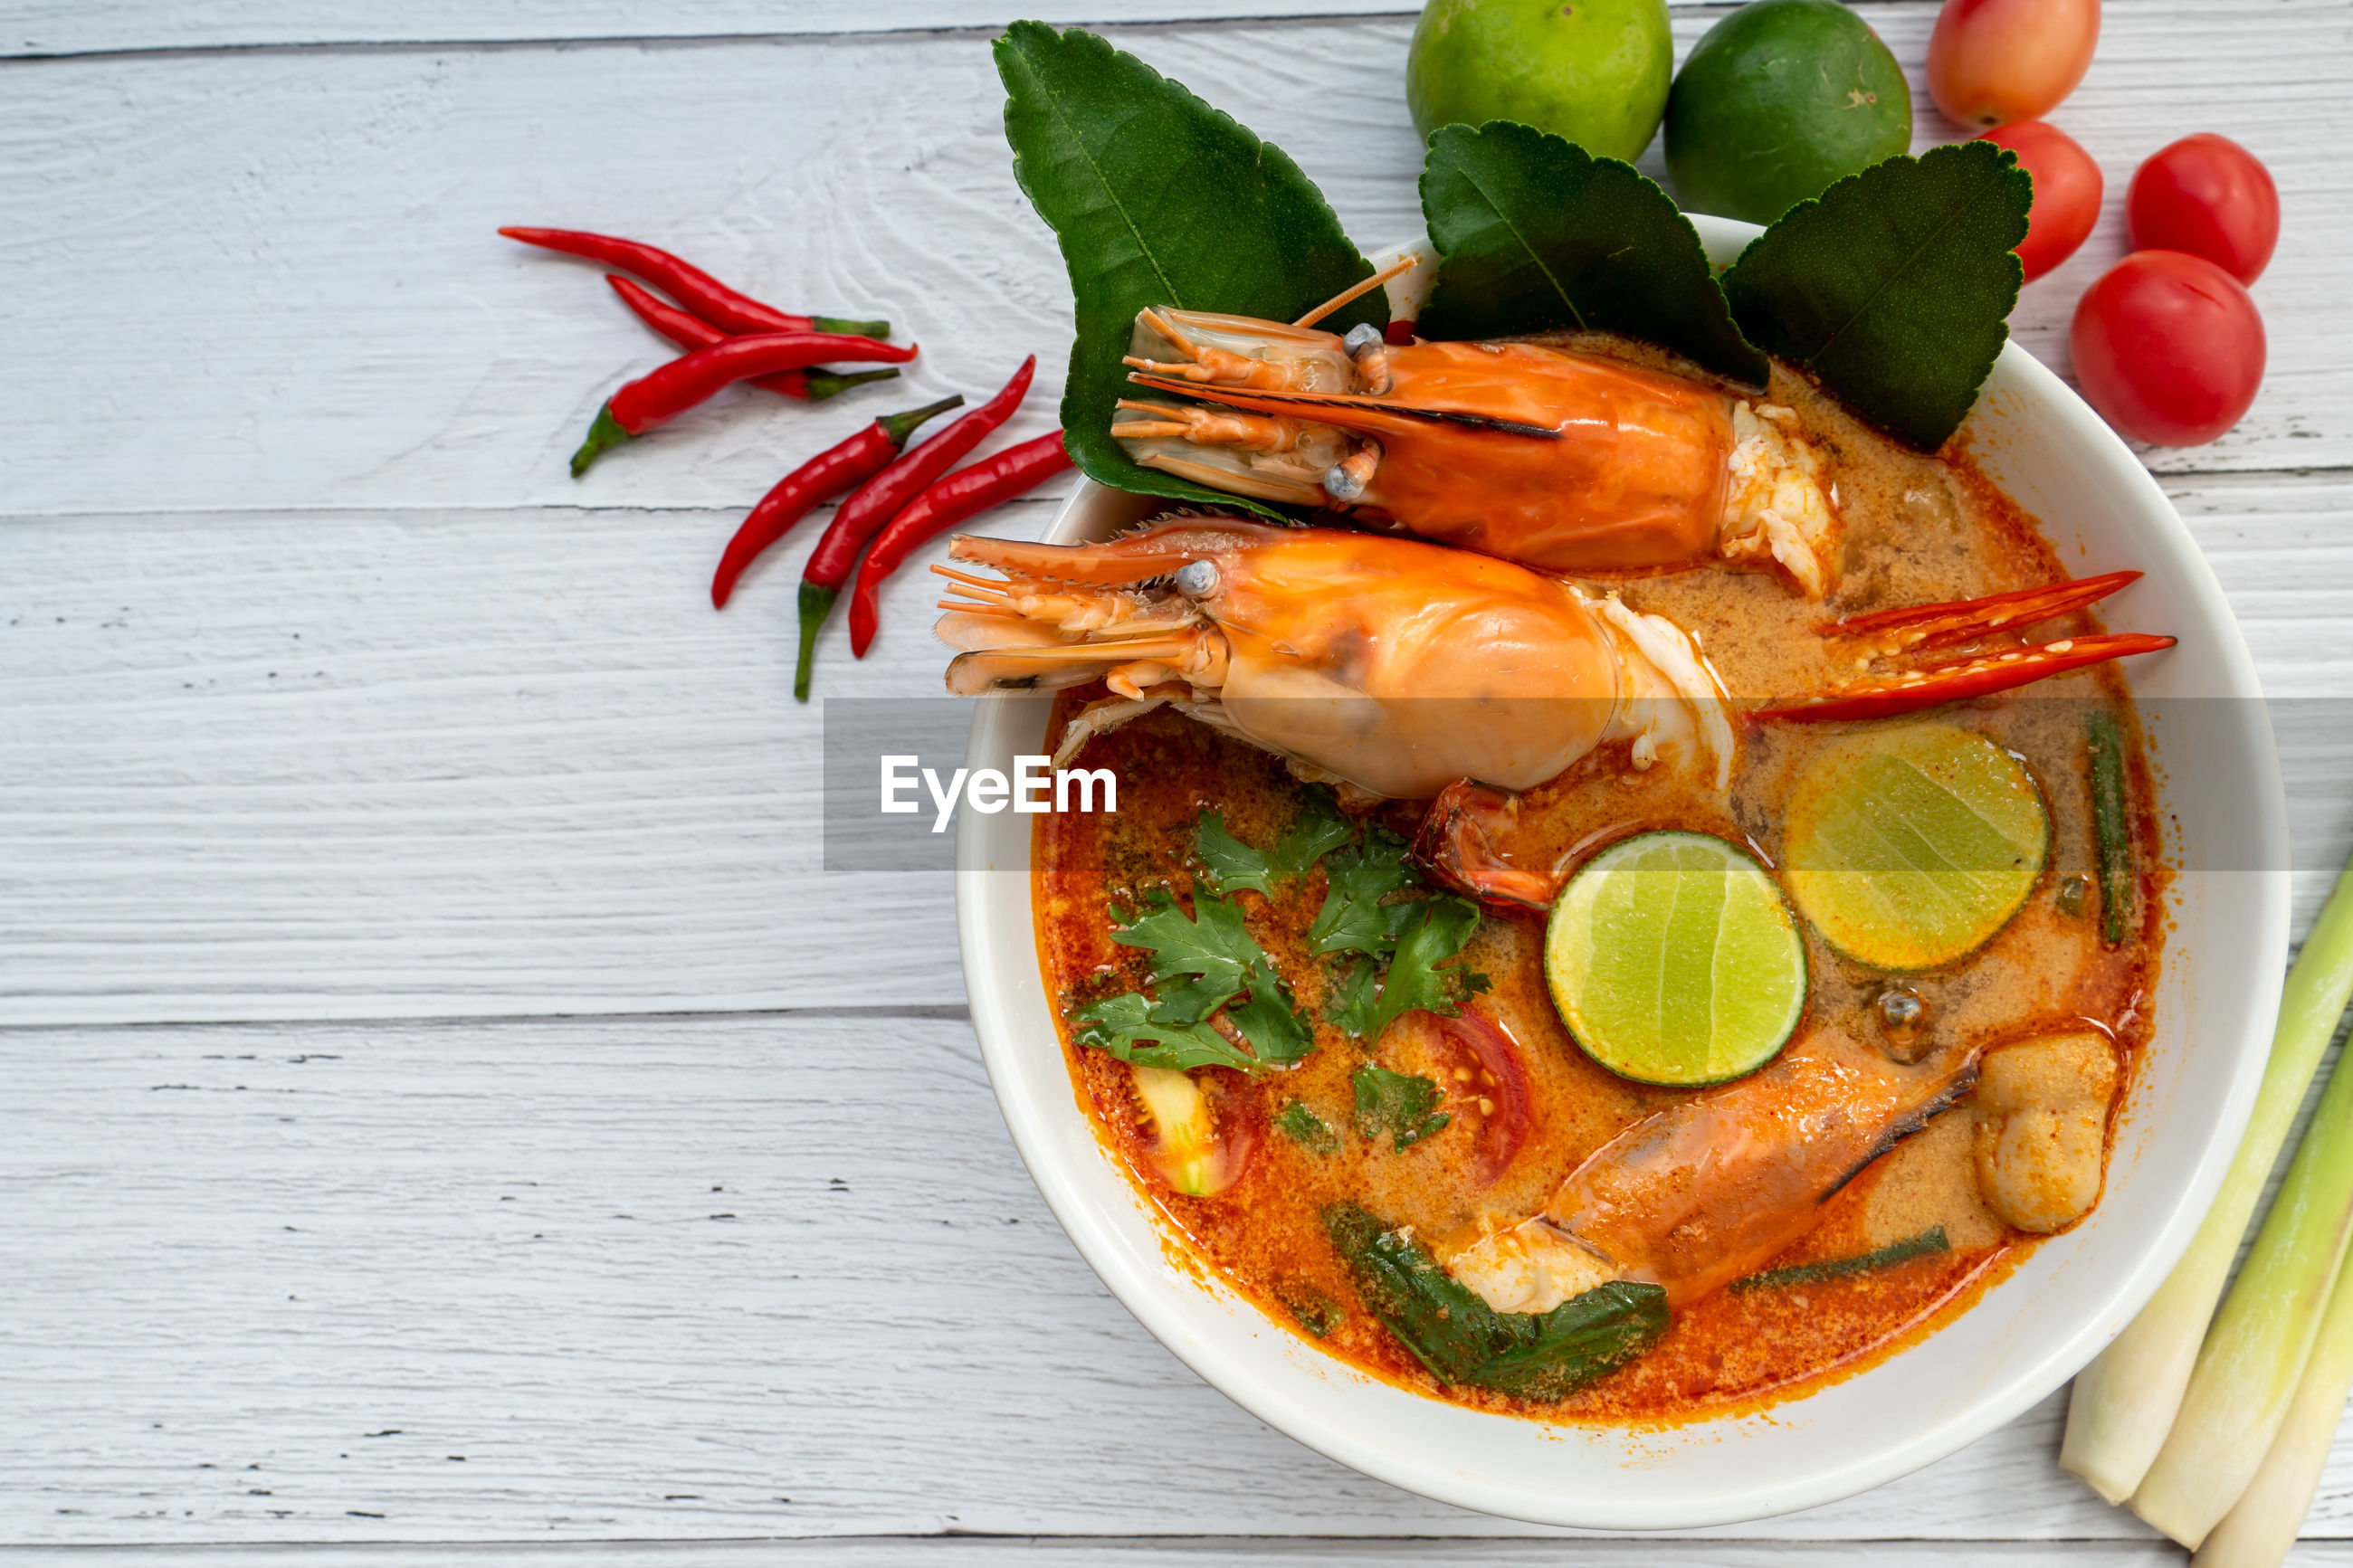 Tom yum soup. tom yam kung is a thai spicy soup with shrimps, lemongrass,lime, ginger, galangal.